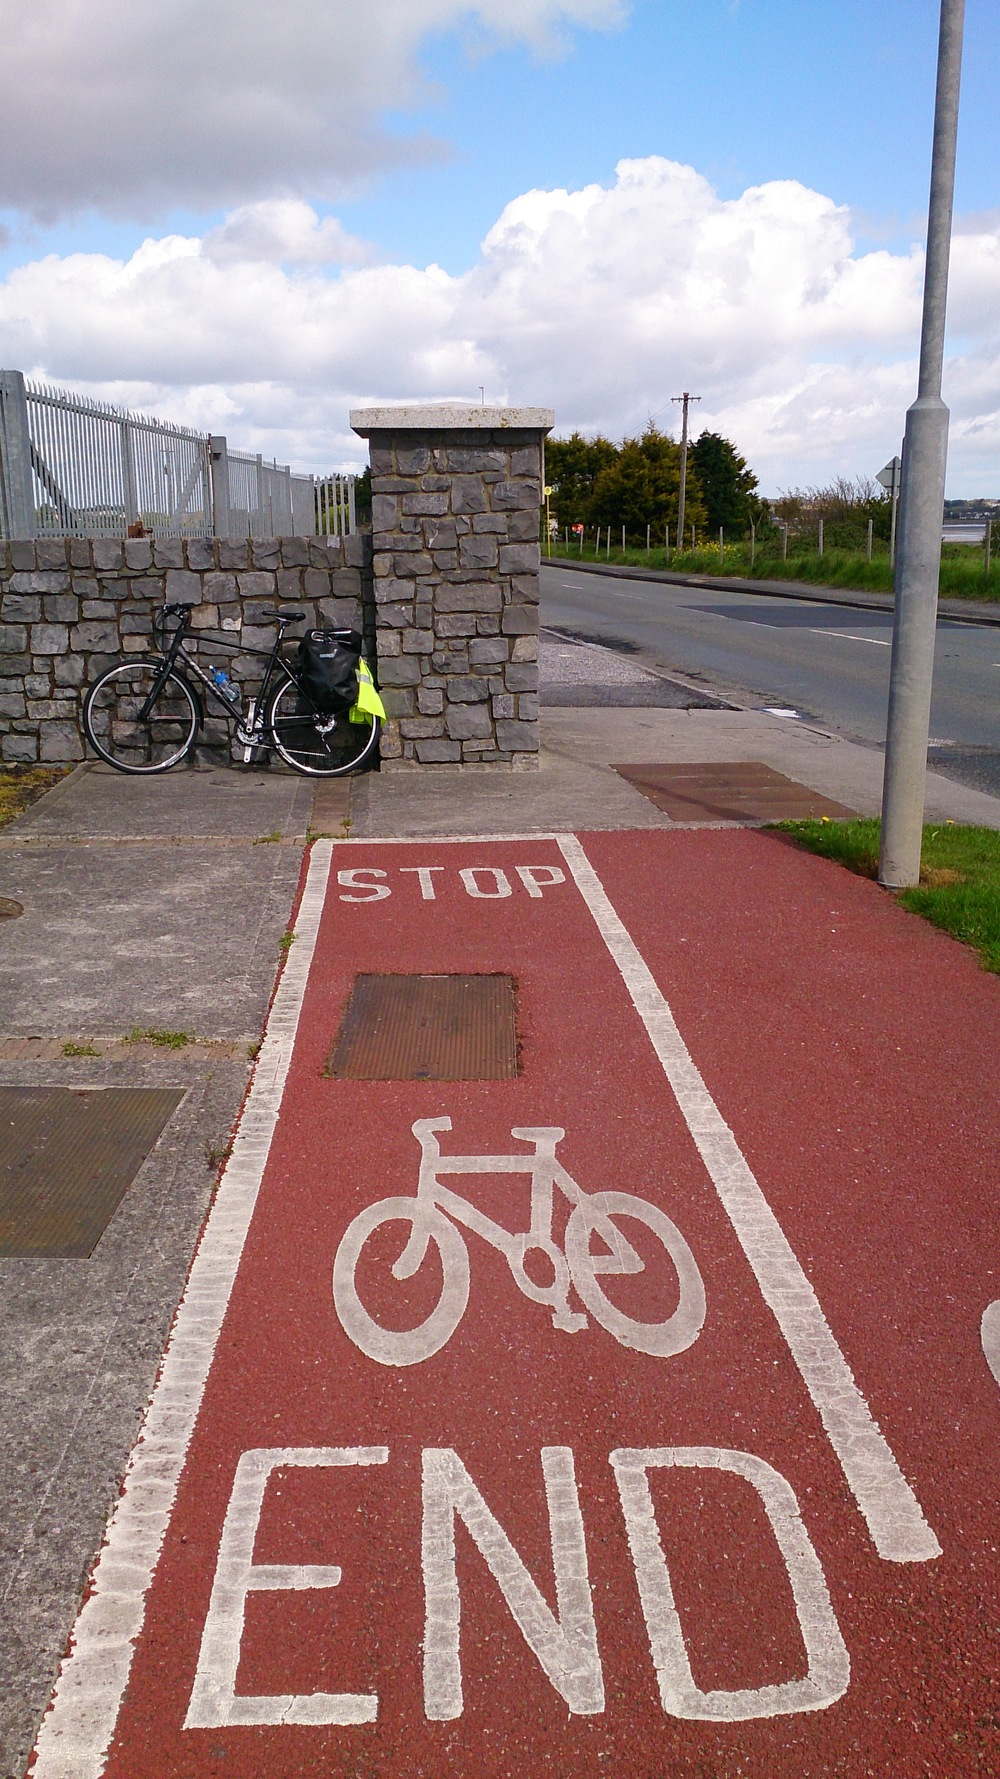 Bicycle lanes in Dublin could be summed up by this image